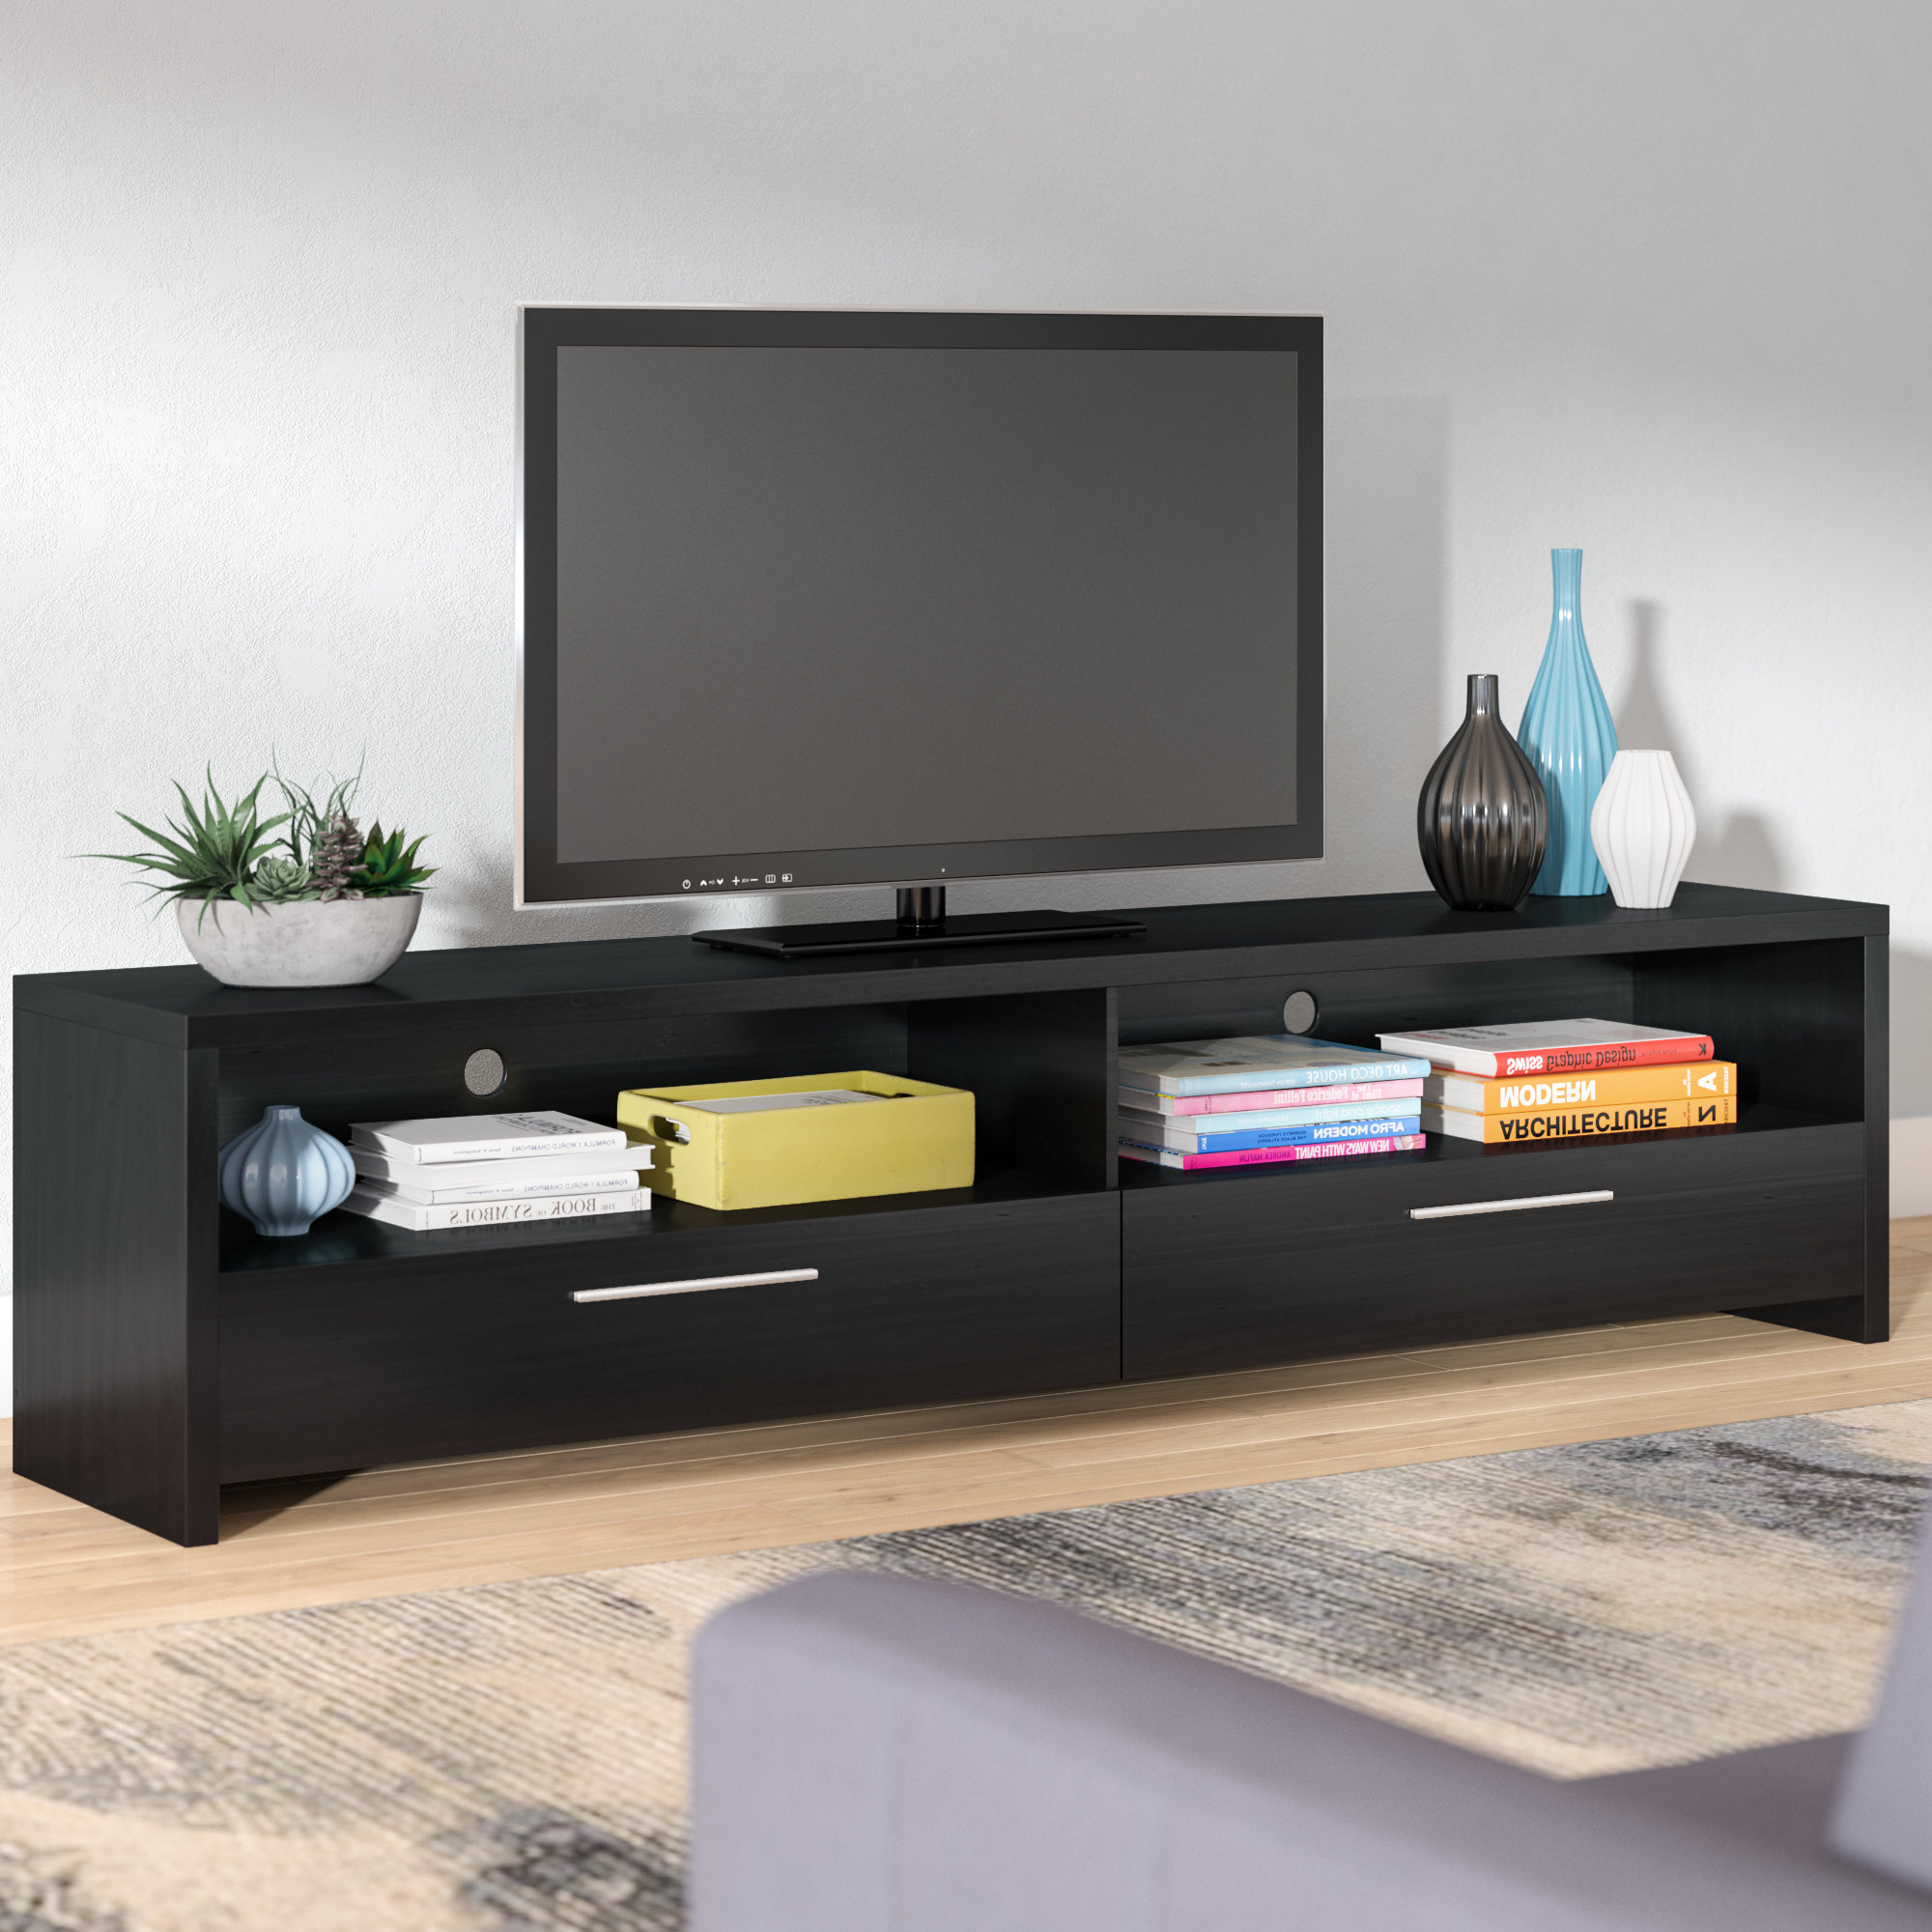 Red Modern Tv Stands For Most Popular Modern Modular Wall Units Acrylic Media Console Rustic Red Tv Stand (Gallery 10 of 20)